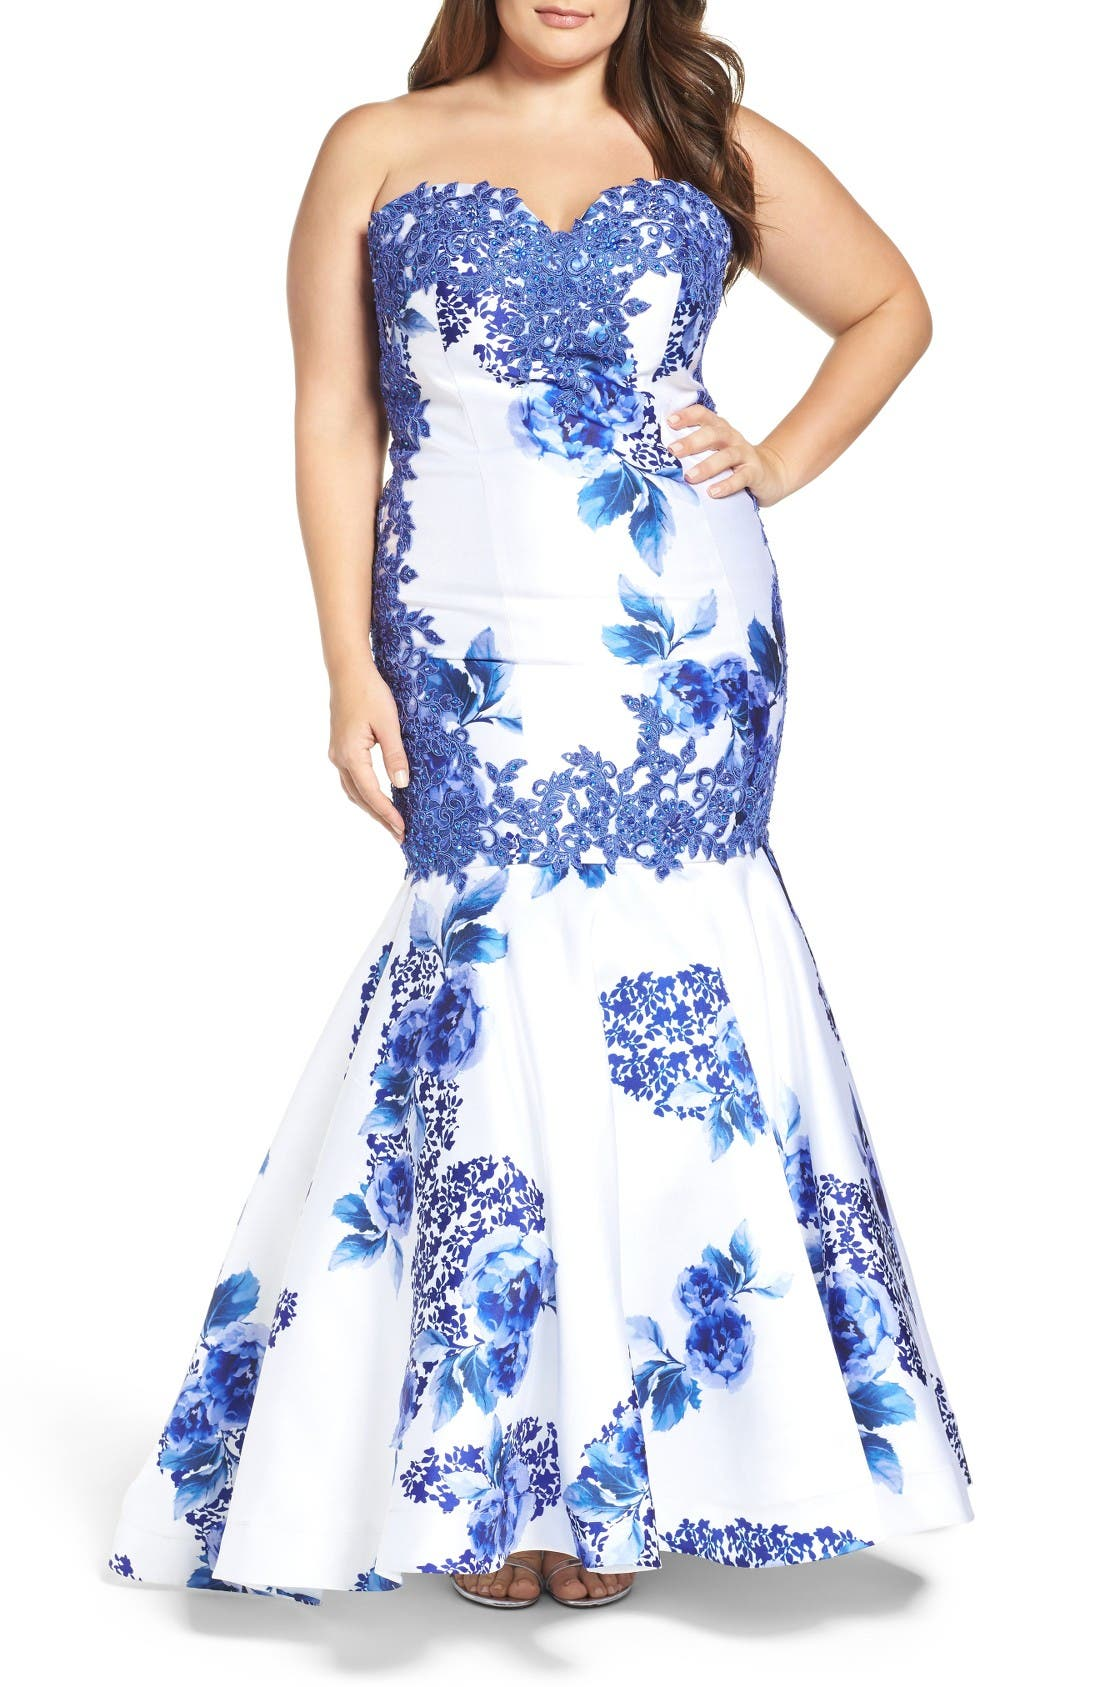 Main Image - Mac Duggal Embellished Strapless Zip Off Mermaid Gown (Plus Size)